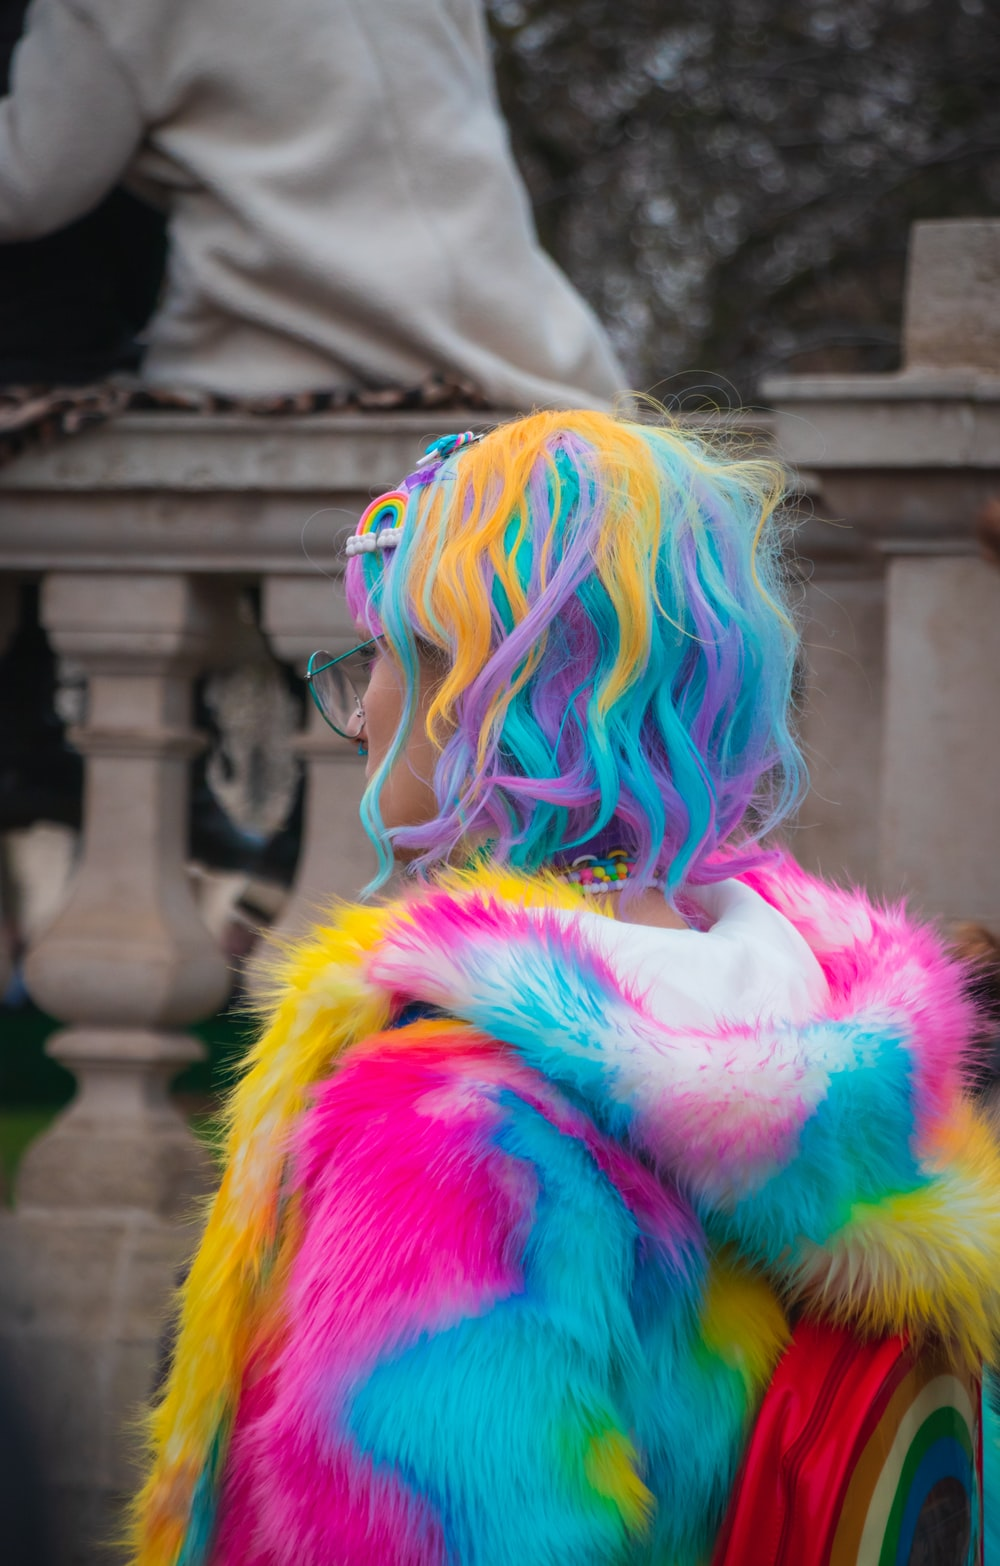 selective color photography of woman wearing blue, yellow, and pink coat and hair